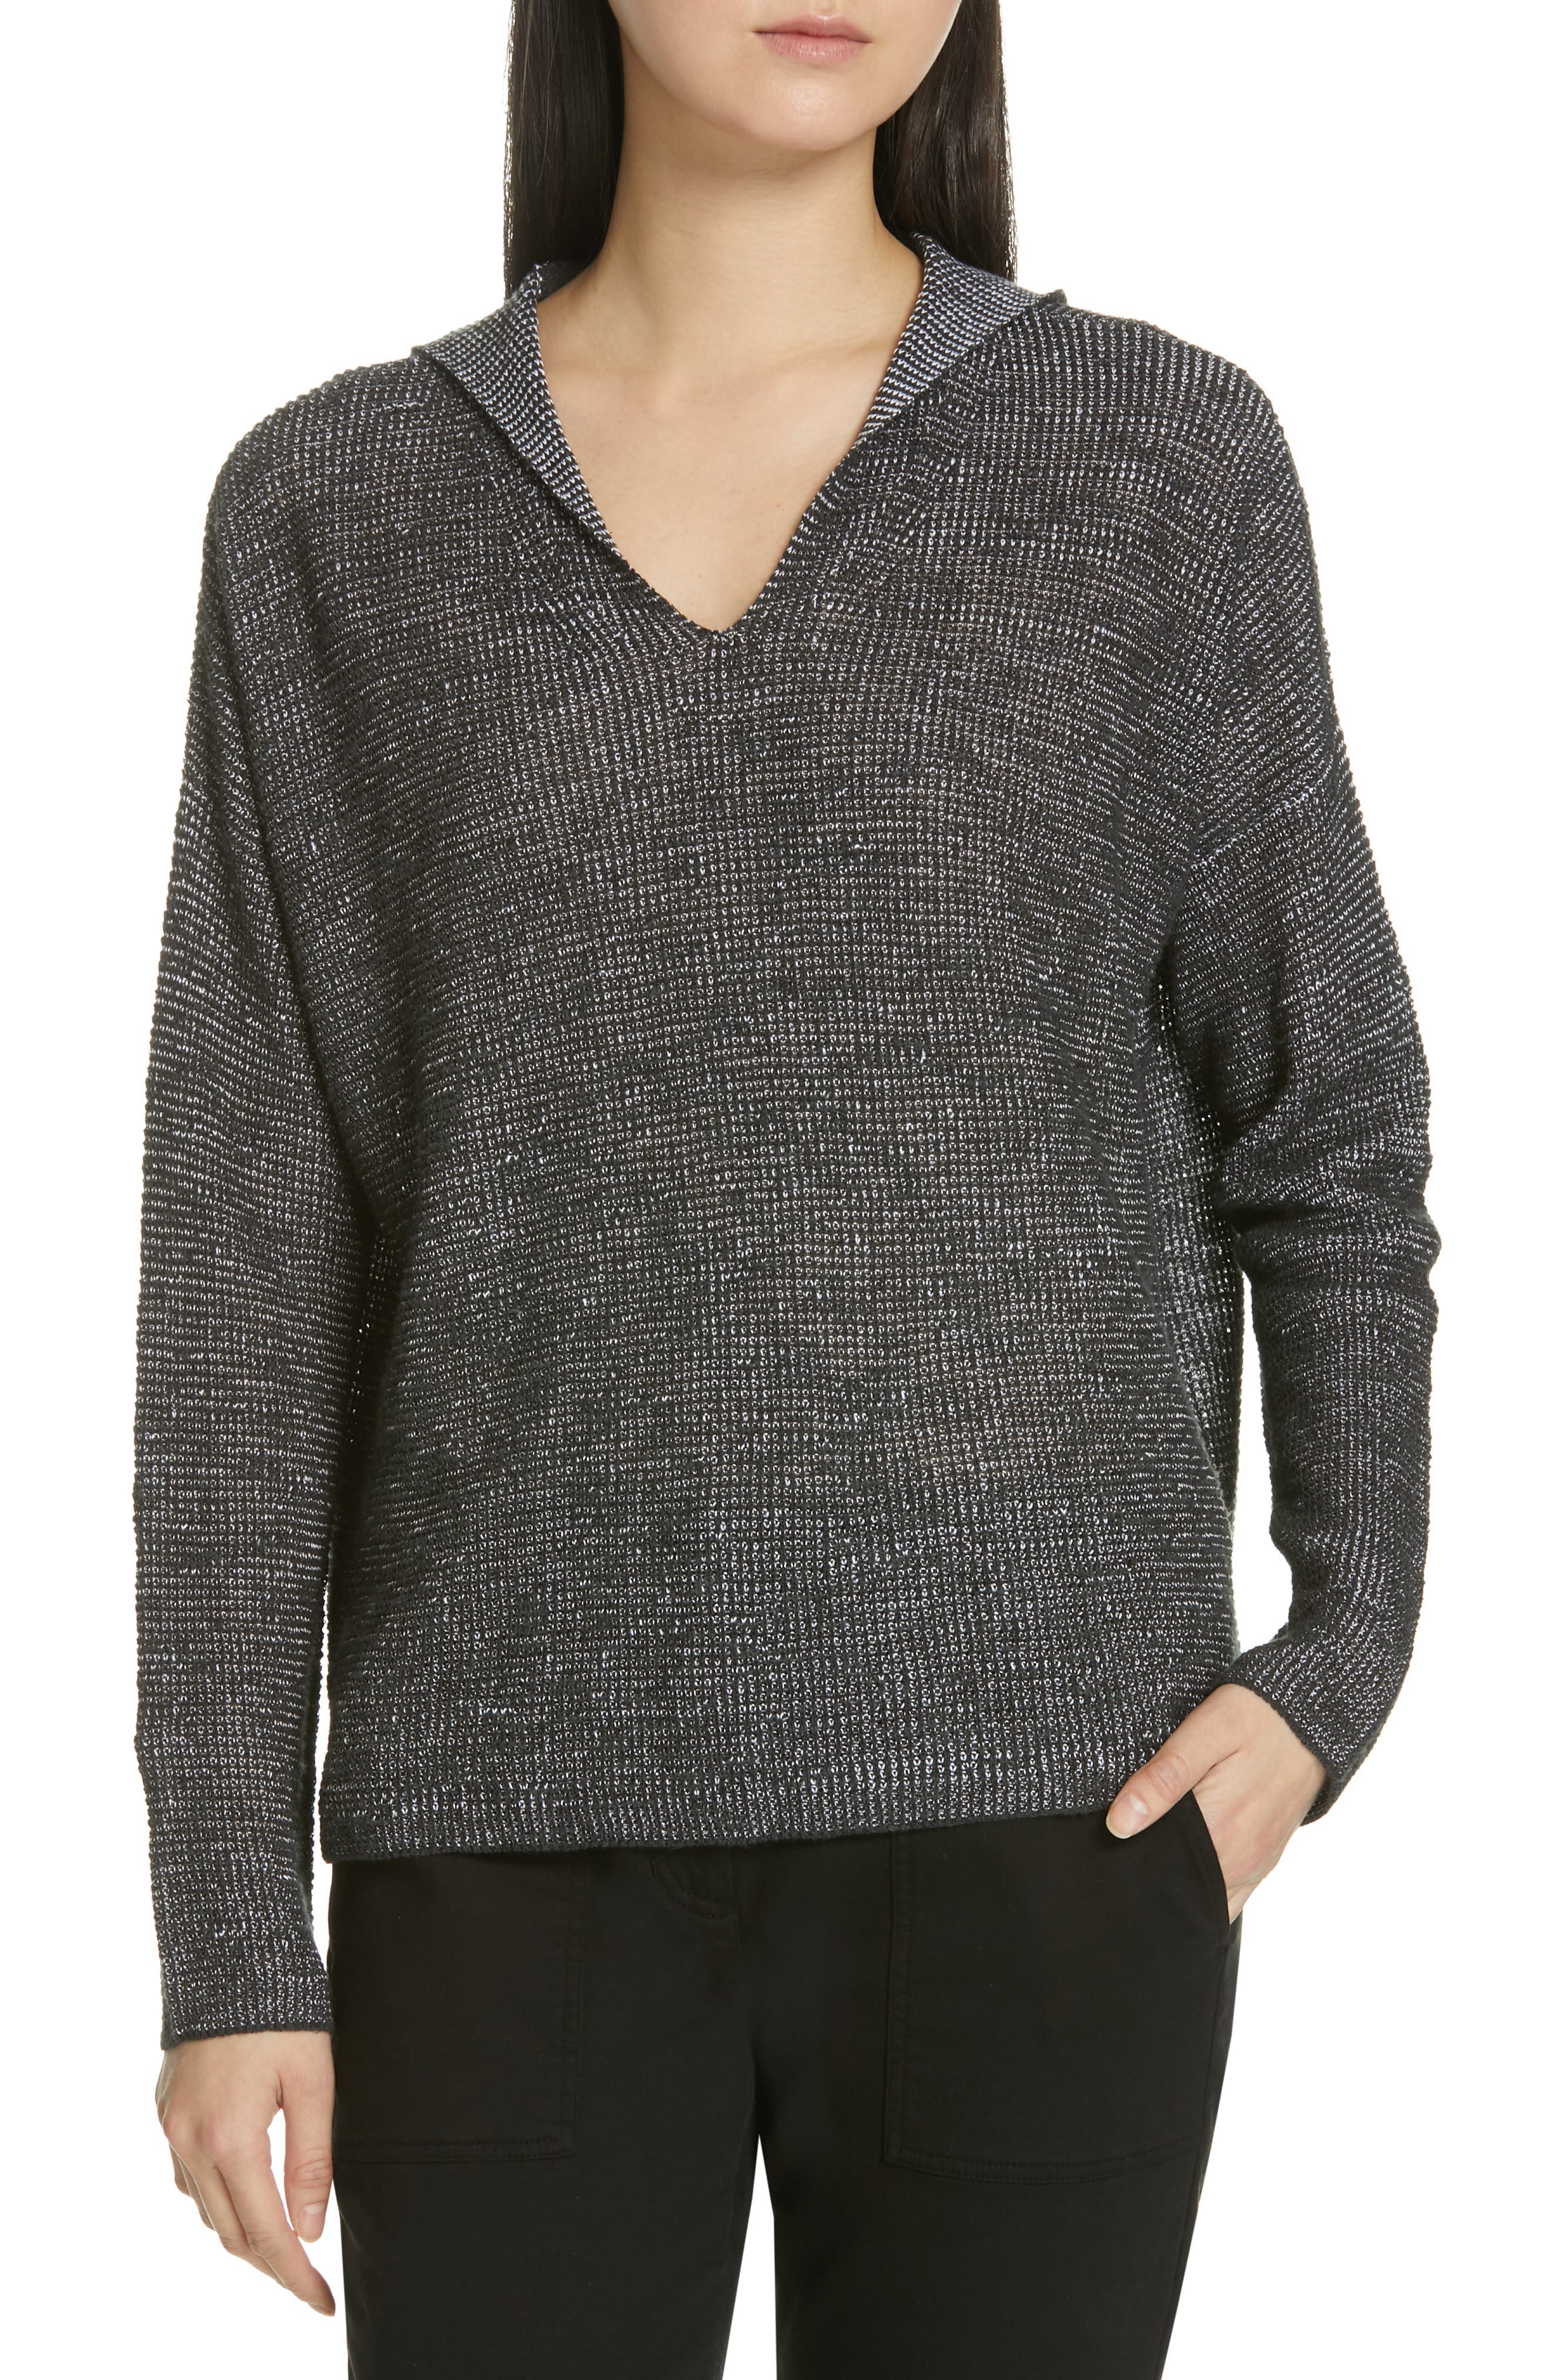 EILEEN FISHER, Organic Linen & Cotton Boxy Hooded Top, Main thumbnail 1, color, CHARCOAL